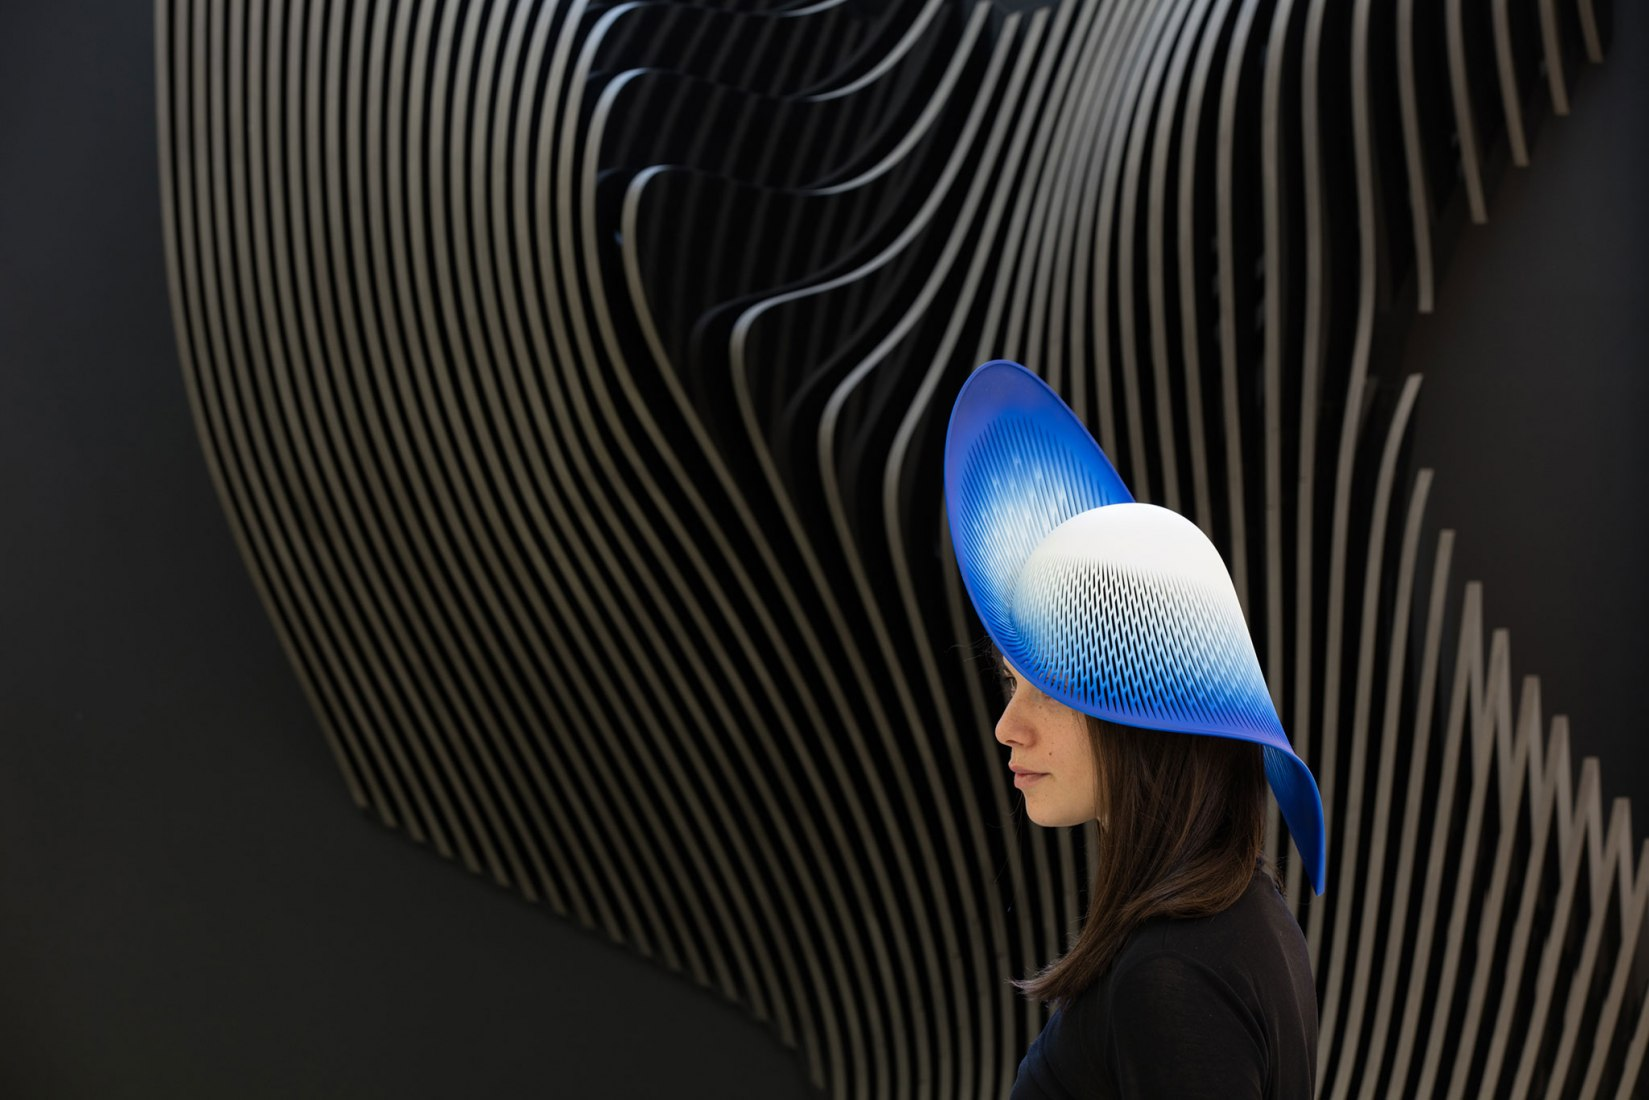 H-Line Hat by Zaha Hadid Architects. Photograph by Luke Hayes